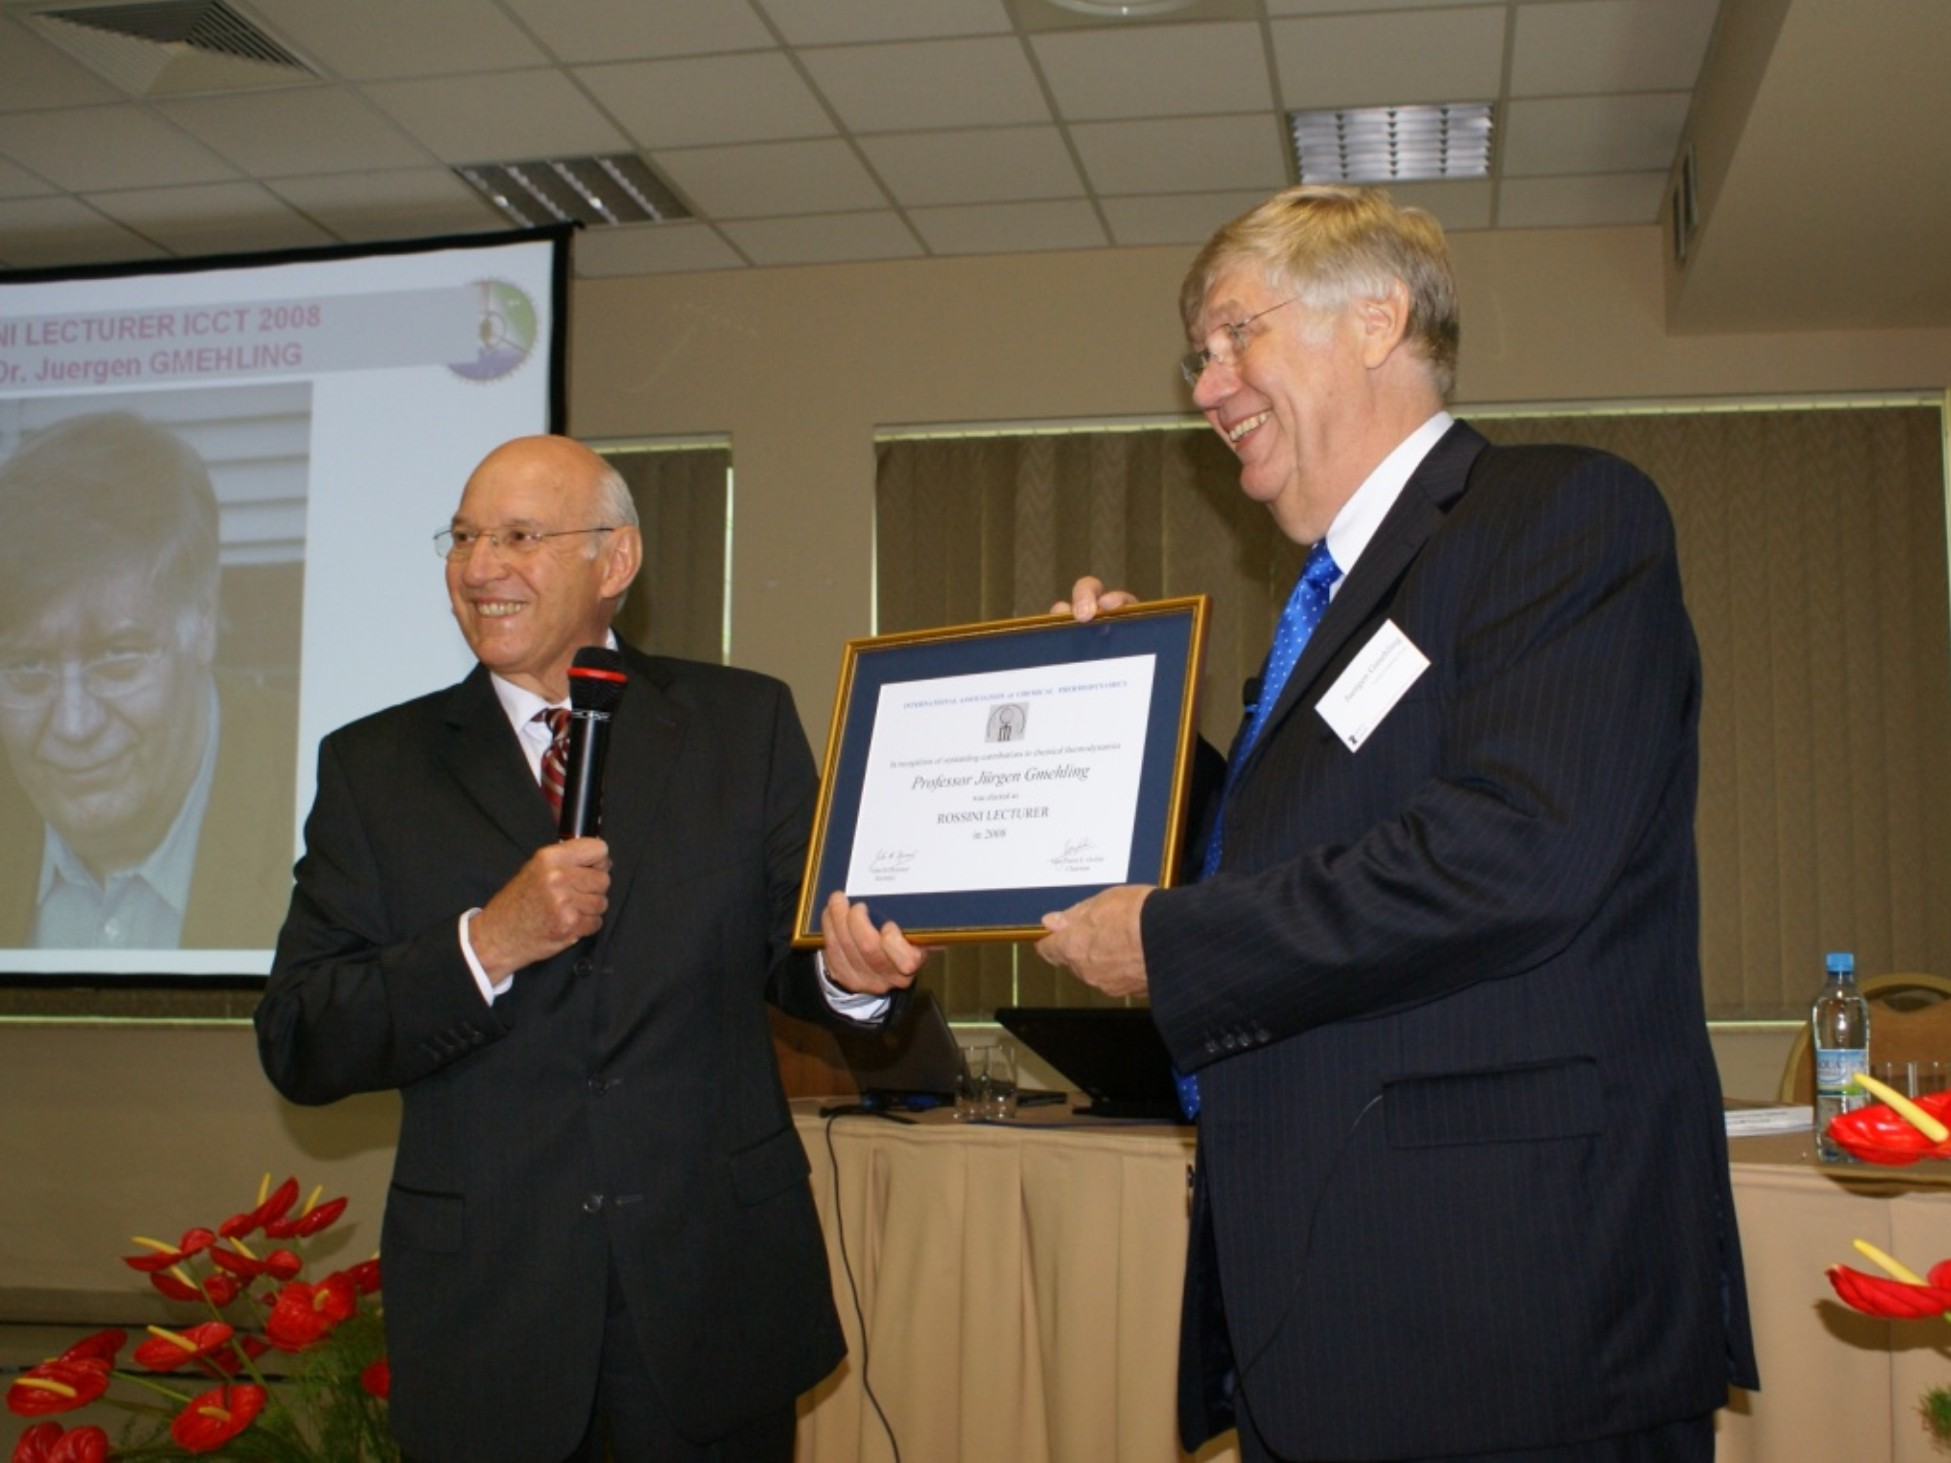 Rossini Lectureship Award